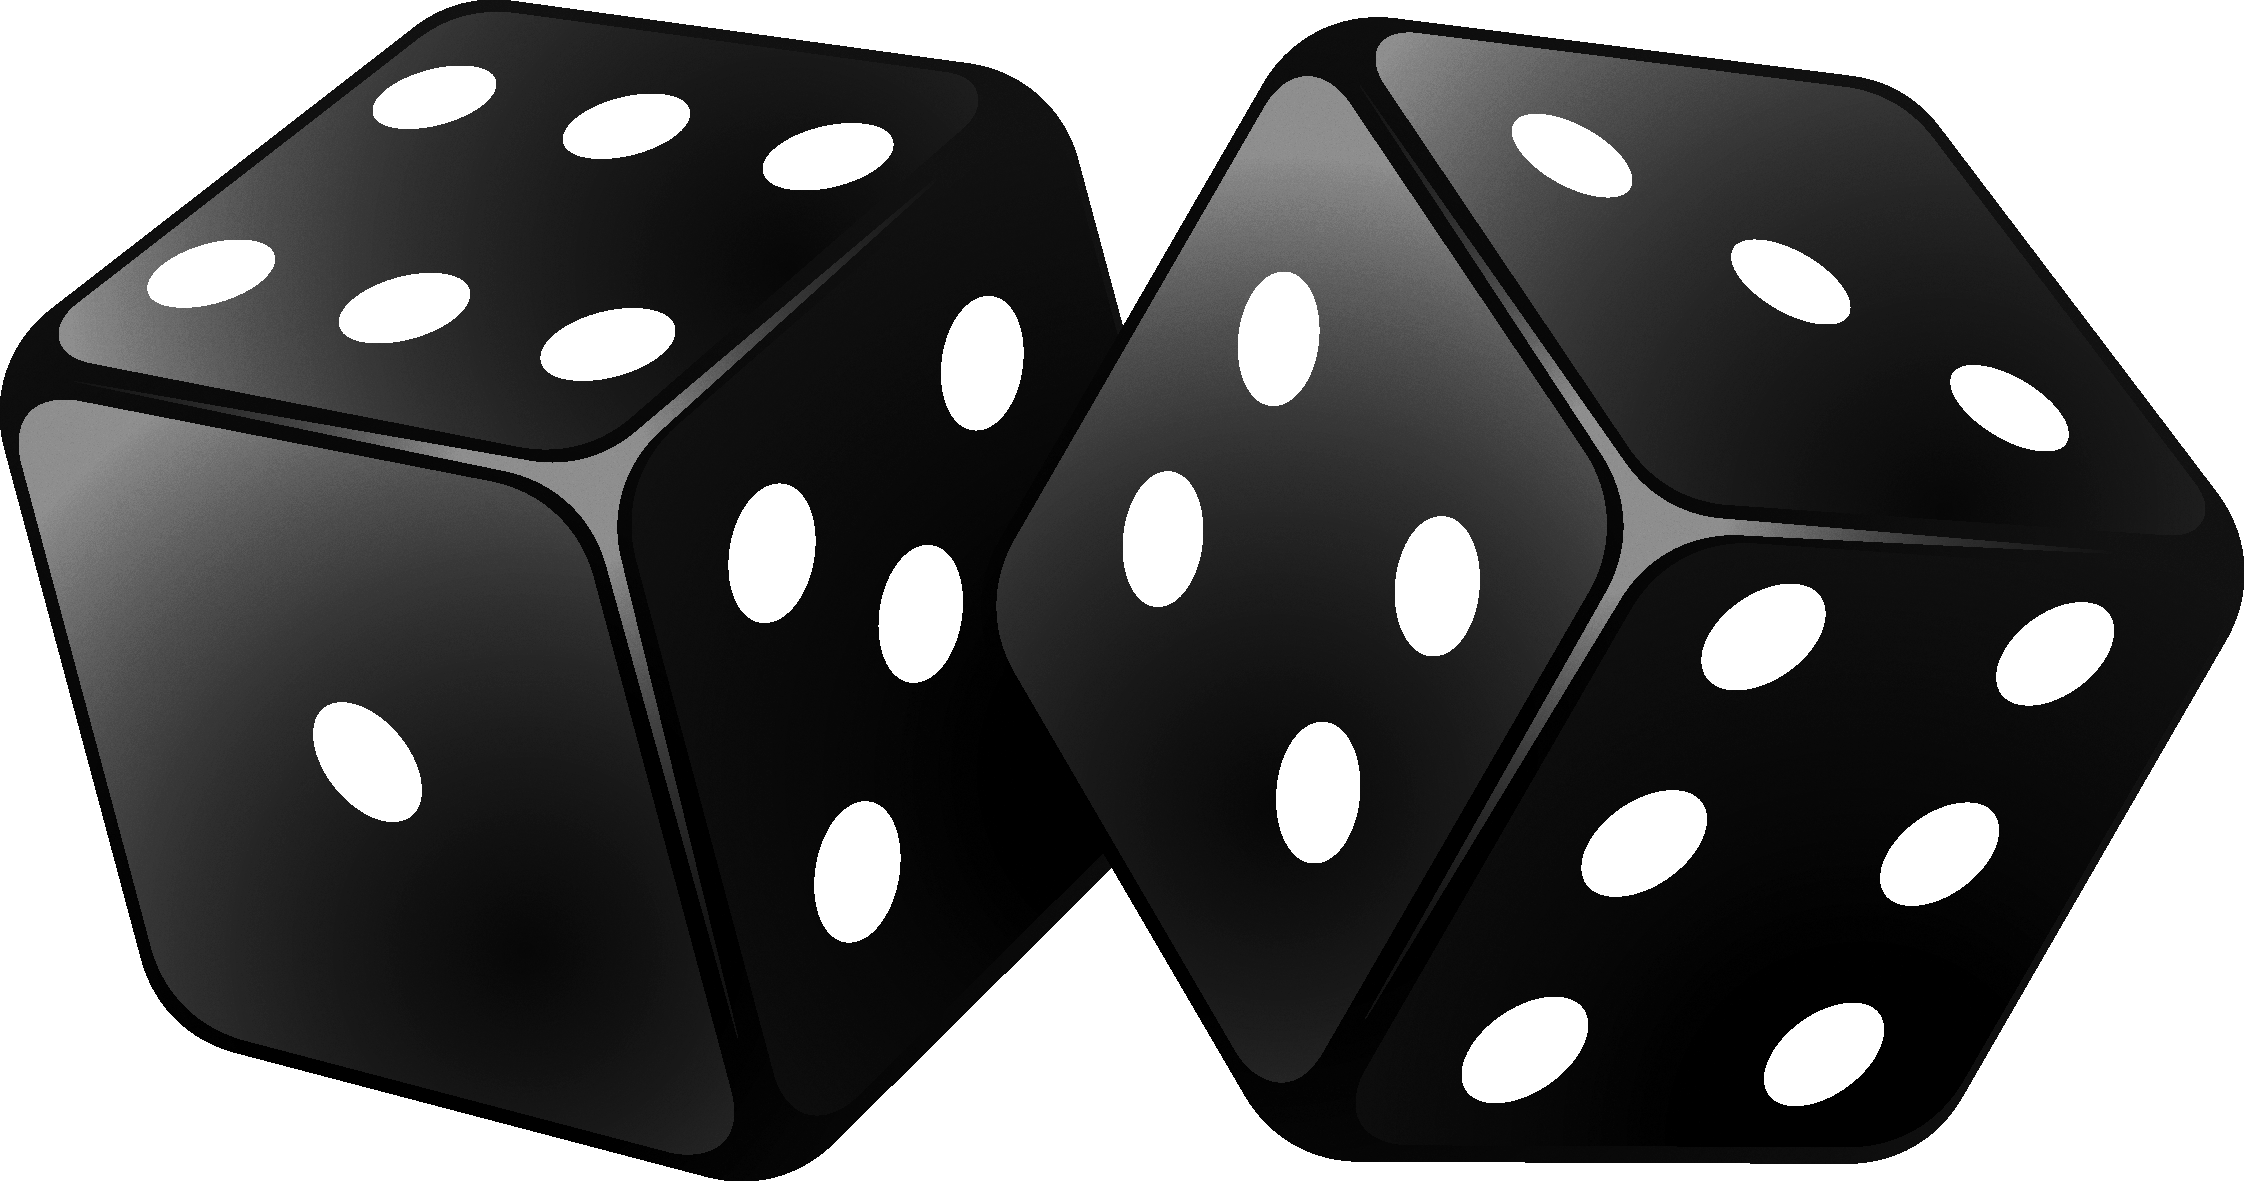 dice png images are download crazypngm crazy png images download #30527